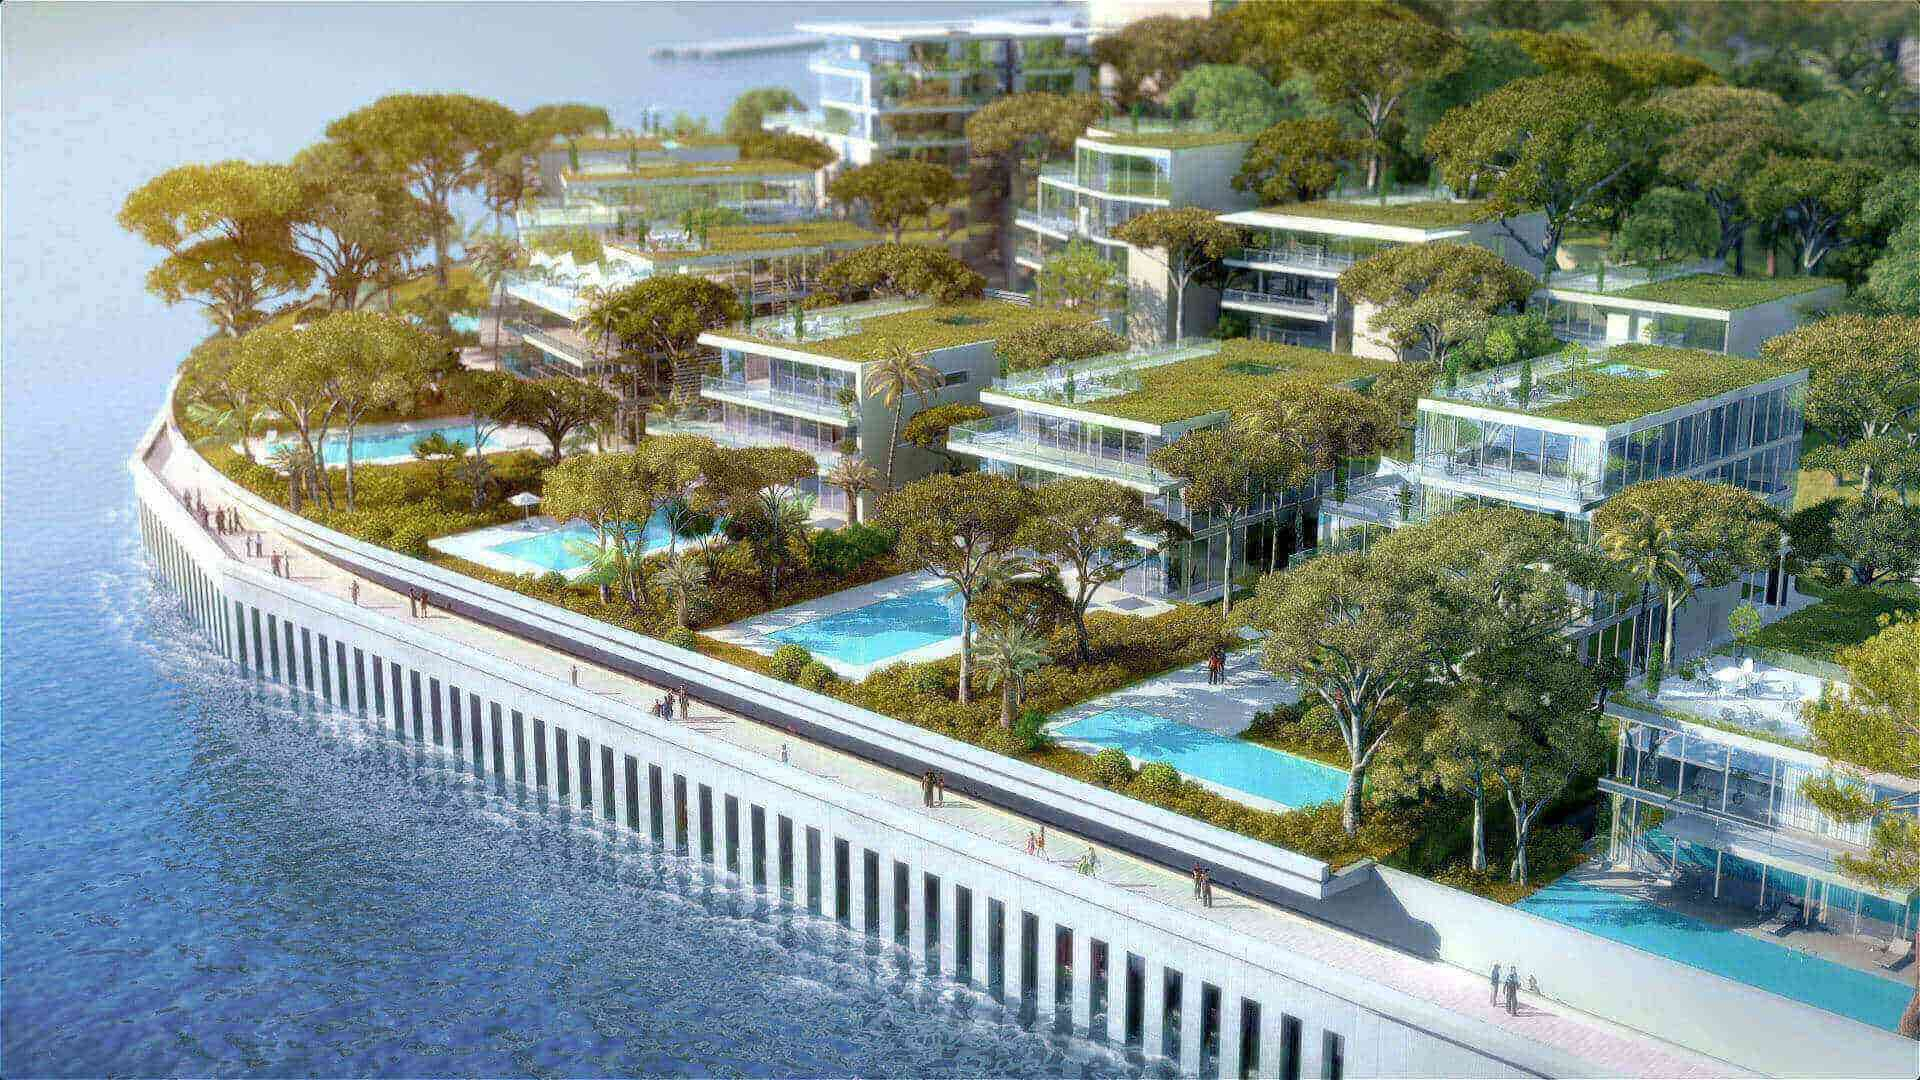 Best-new-property-developments-in-the-world-Portier-Cove-Monaco